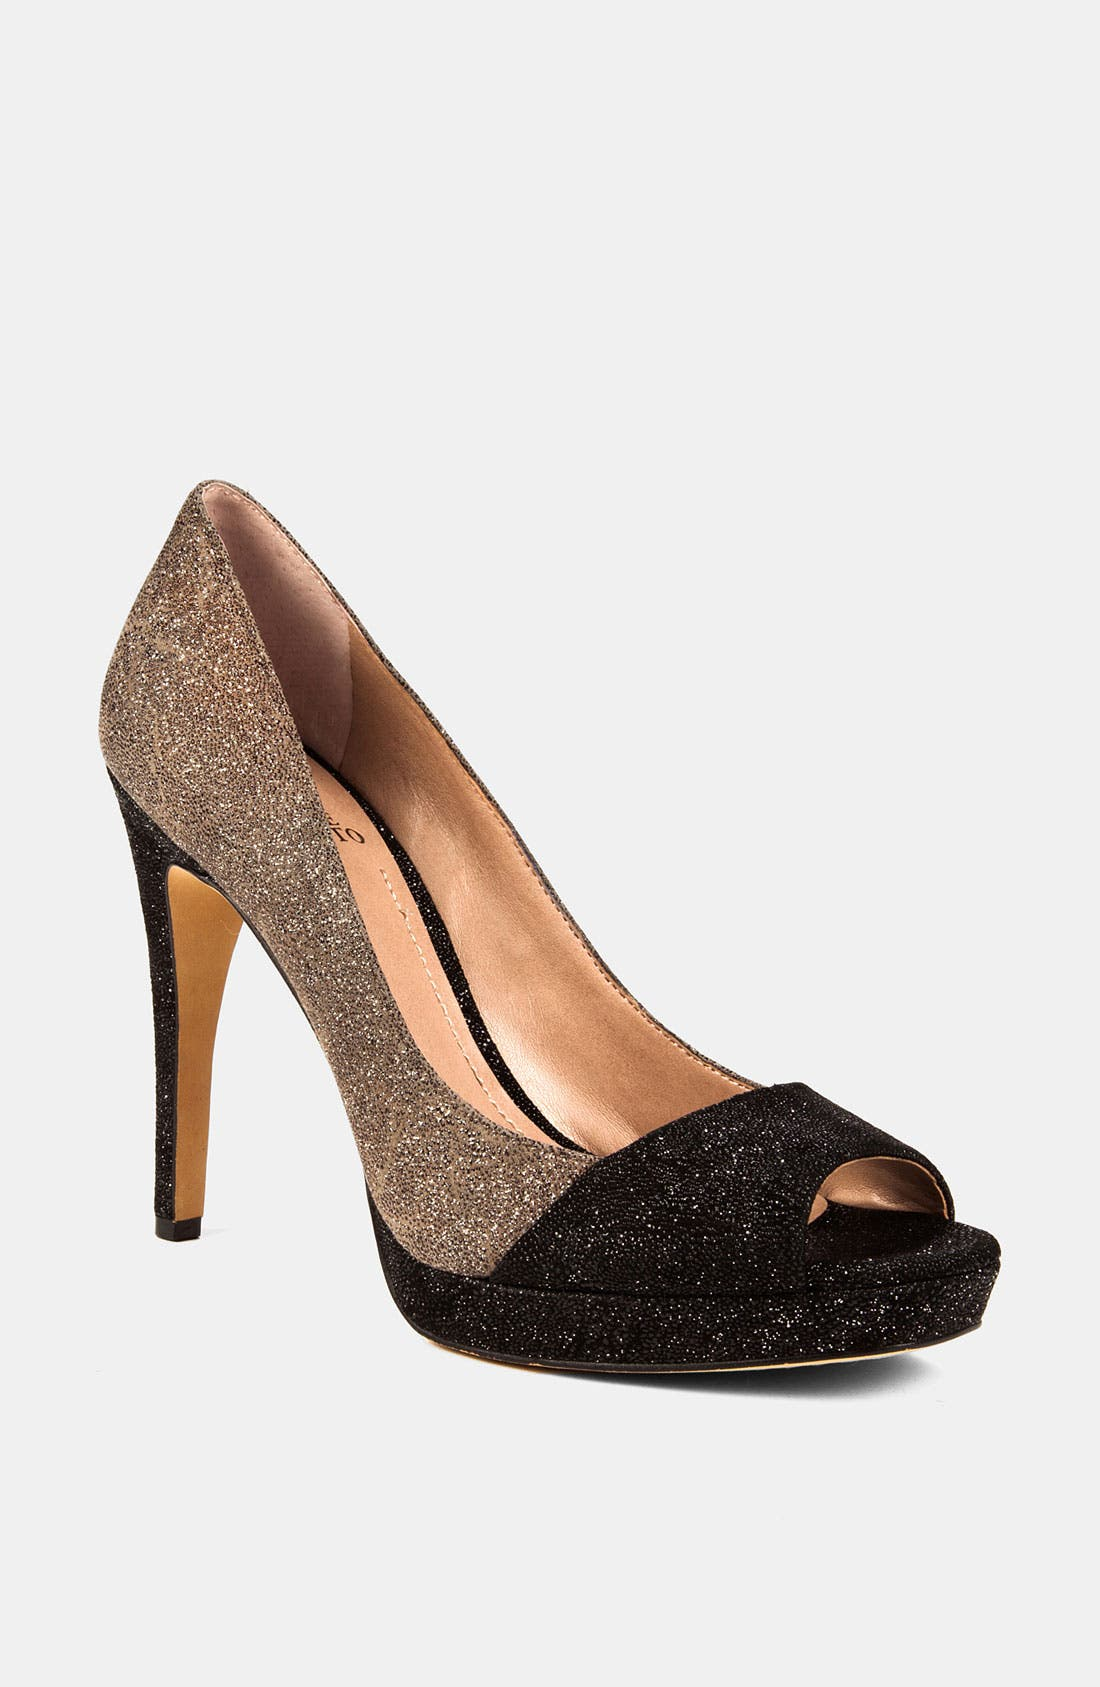 Main Image - Vince Camuto 'Timmons' Pump